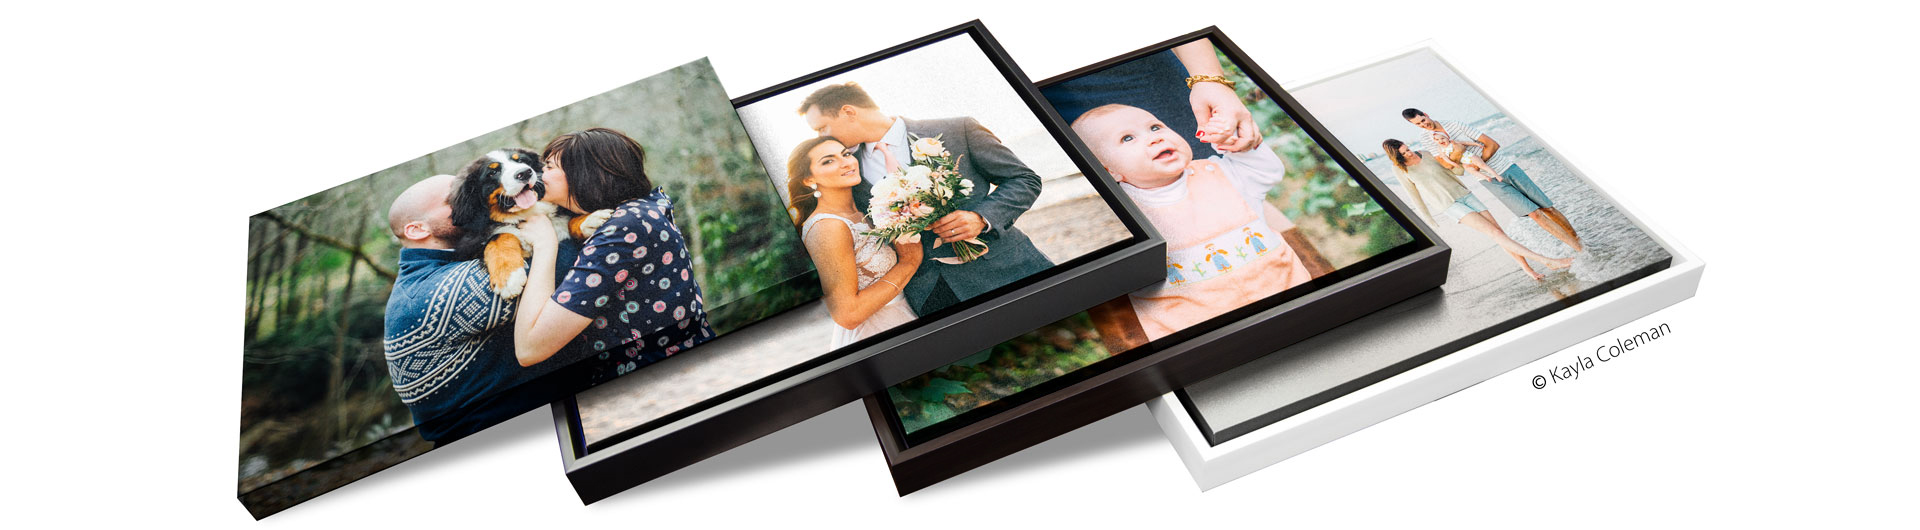 Canvas Prints - Create Your Own Canvas Prints Online with CG Pro Prints